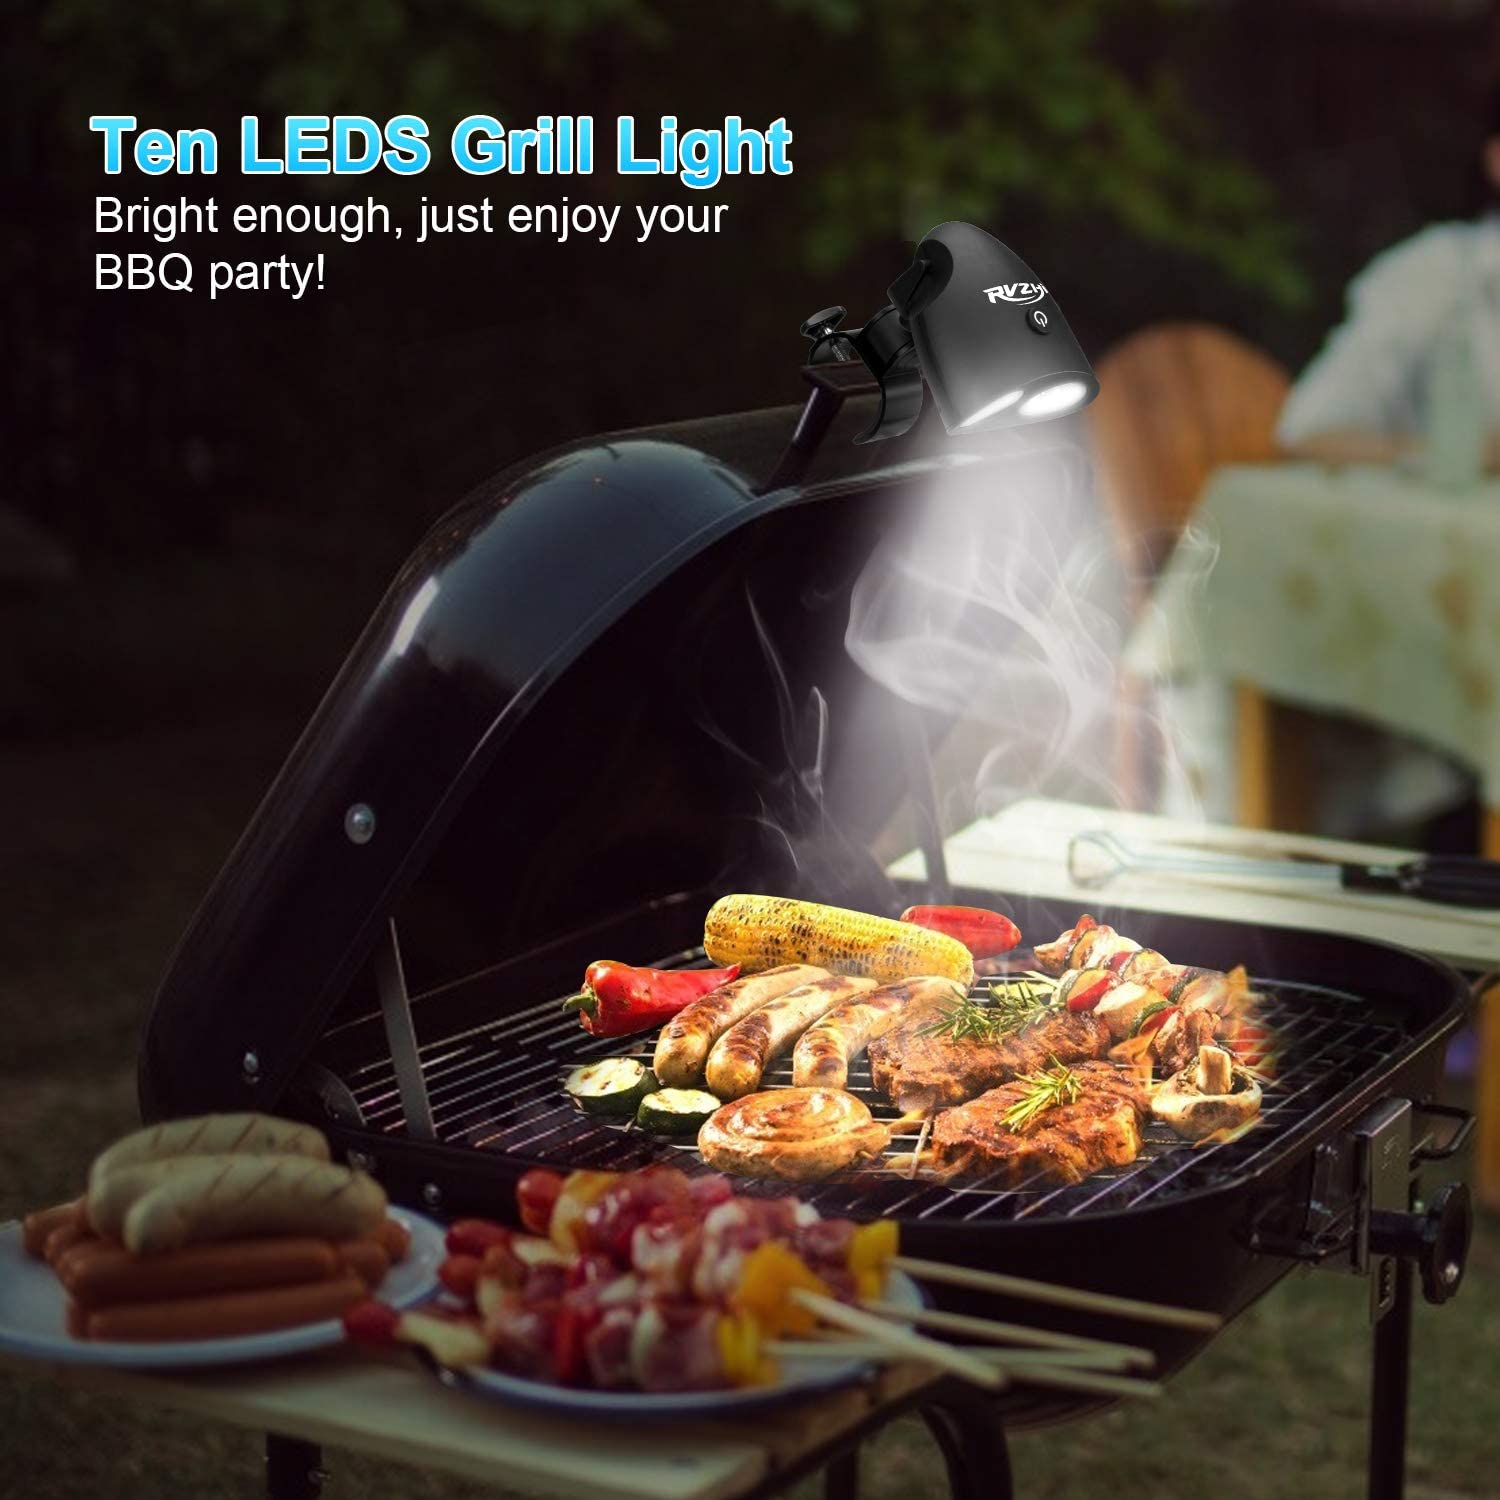 RVZHI Grill Lights for Barbecue Upgraded Barbecue Grilling Light with 10 LED Super Bright 360/°Rotation Durable /& Waterproof /& Heat Resistant for Gas//Charcoal//Electric Grill Working//Reading//Camping